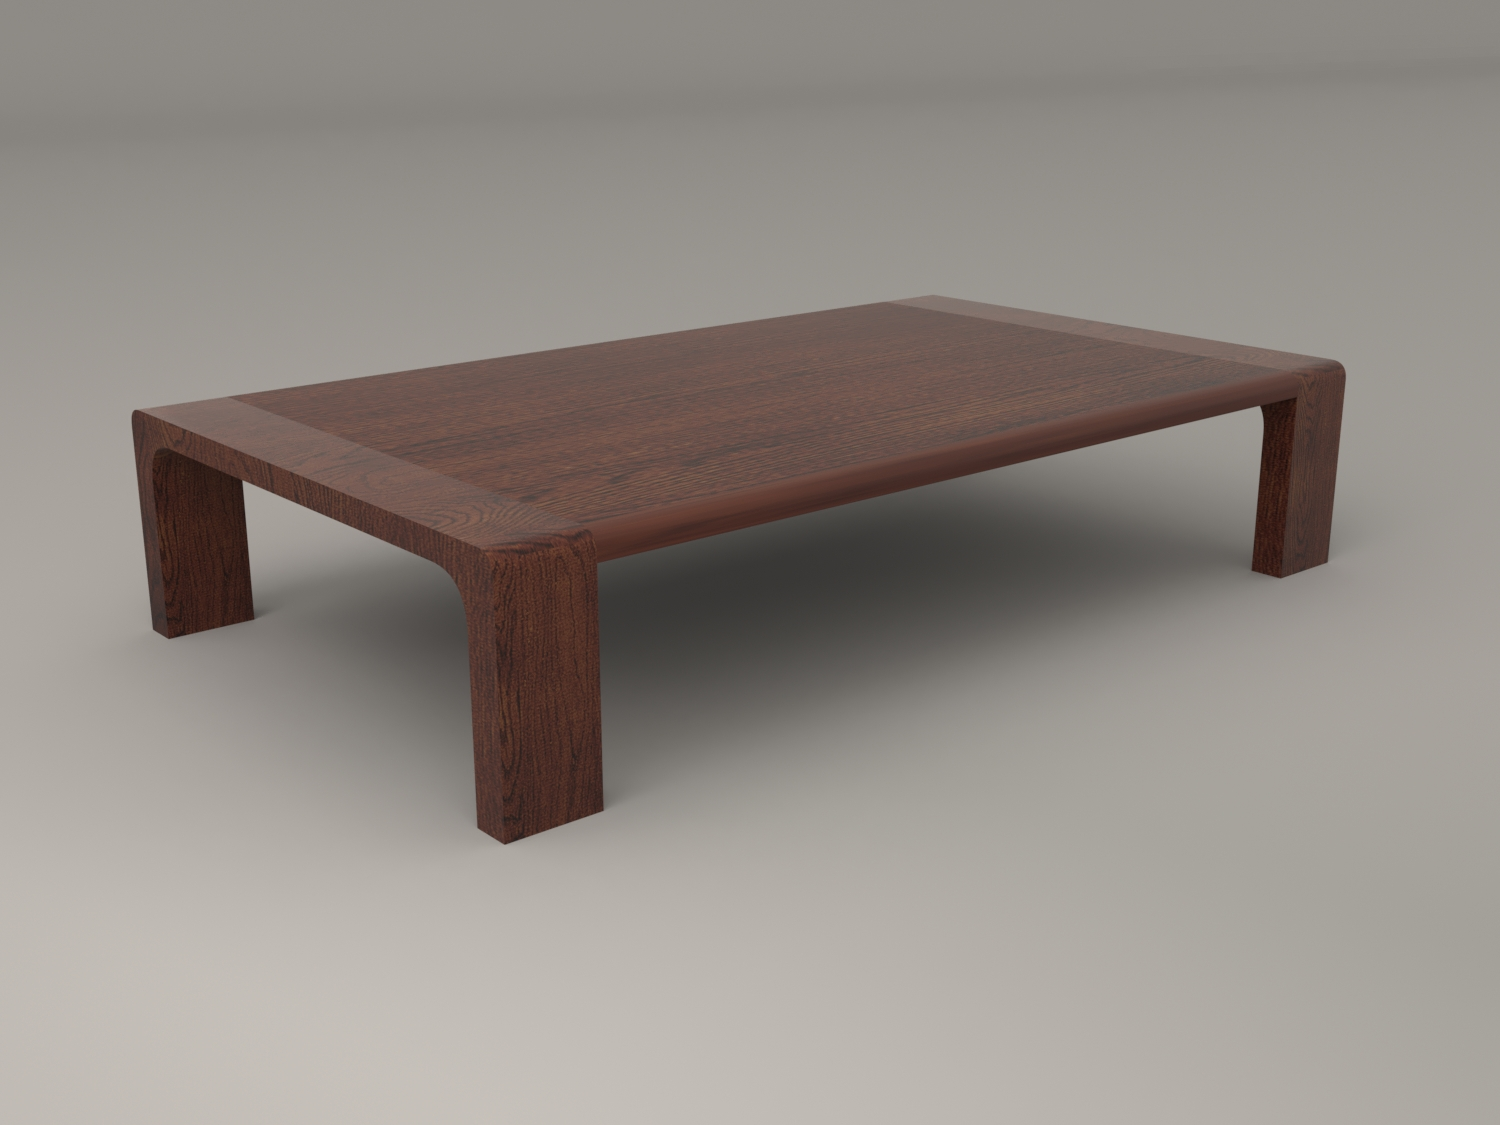 Japanese Style Low Dining Table and Chair by Artemishe 3DOcean